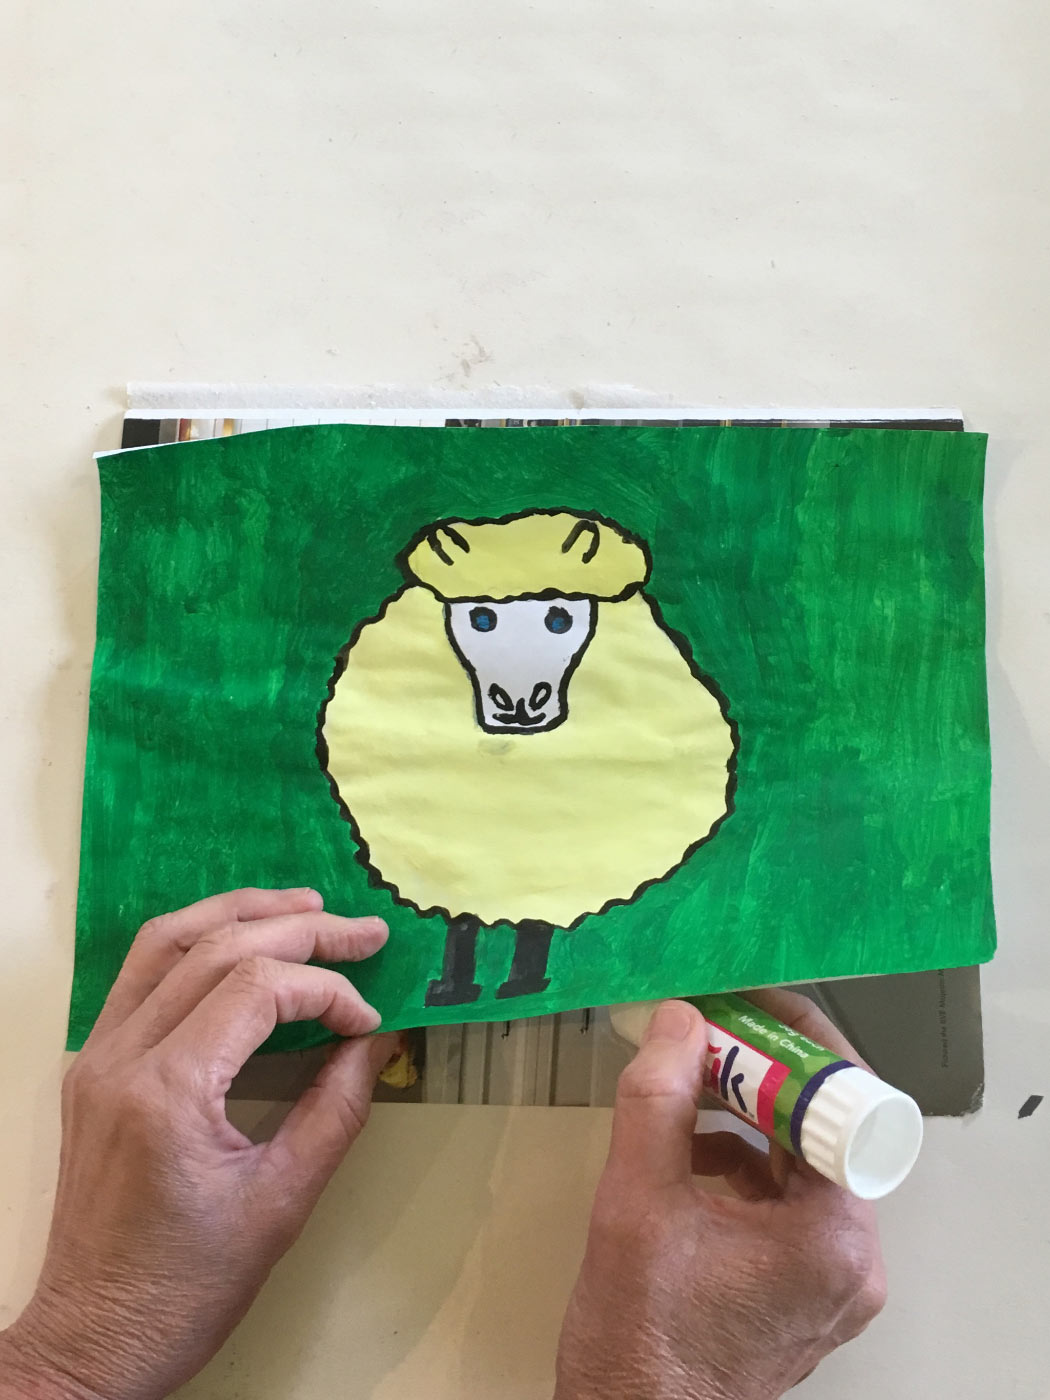 A pair of hands gluing down an illustration of a sheep on paper created with textas and paint.